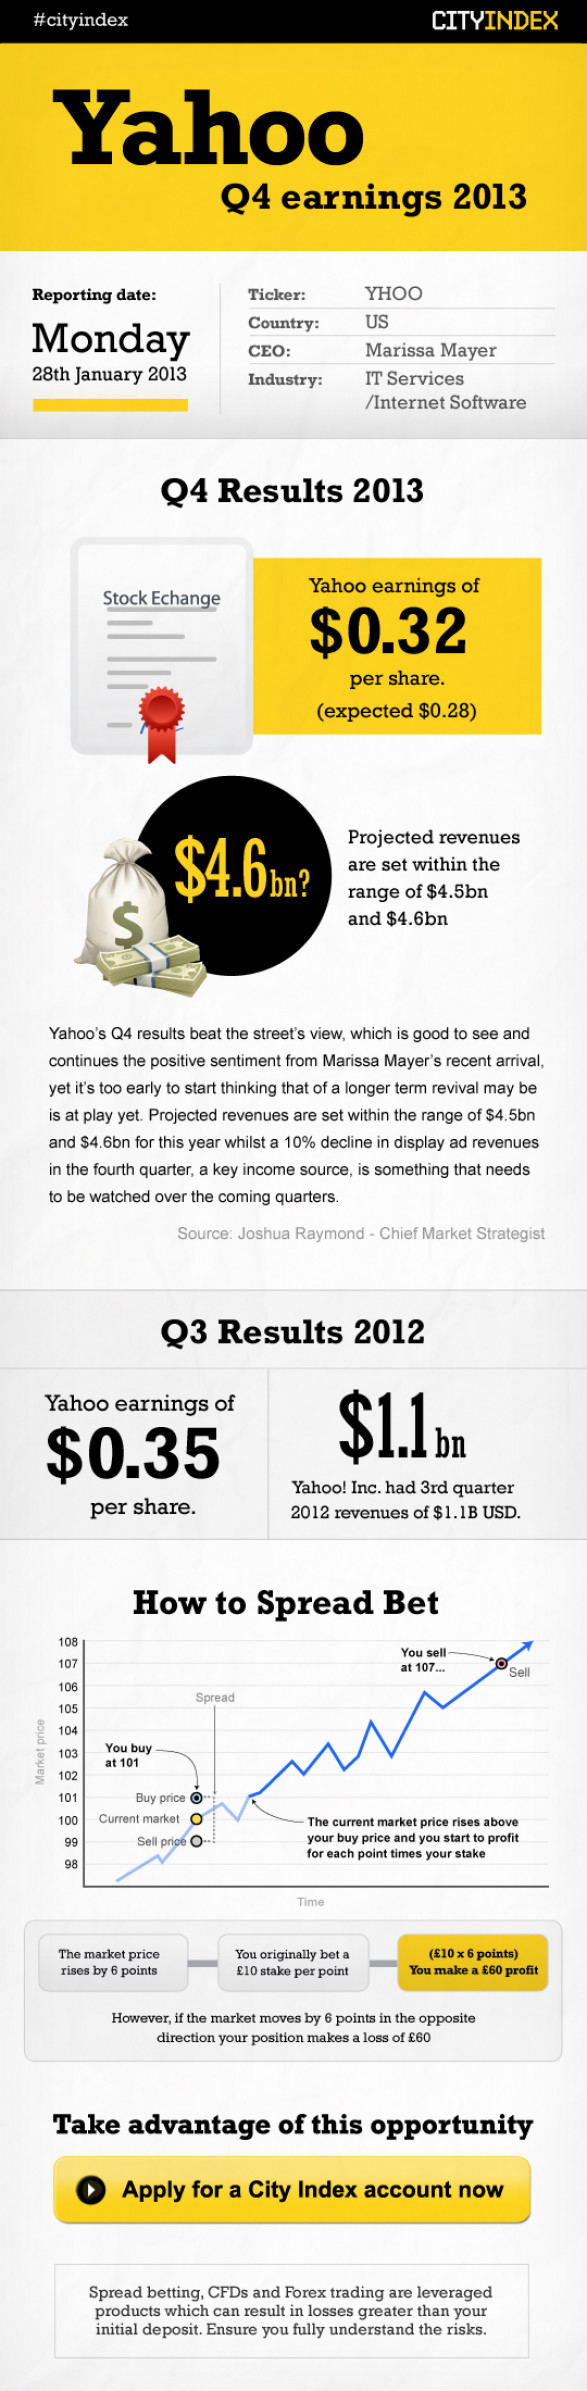 Yahoo Q4 Earnings 2013